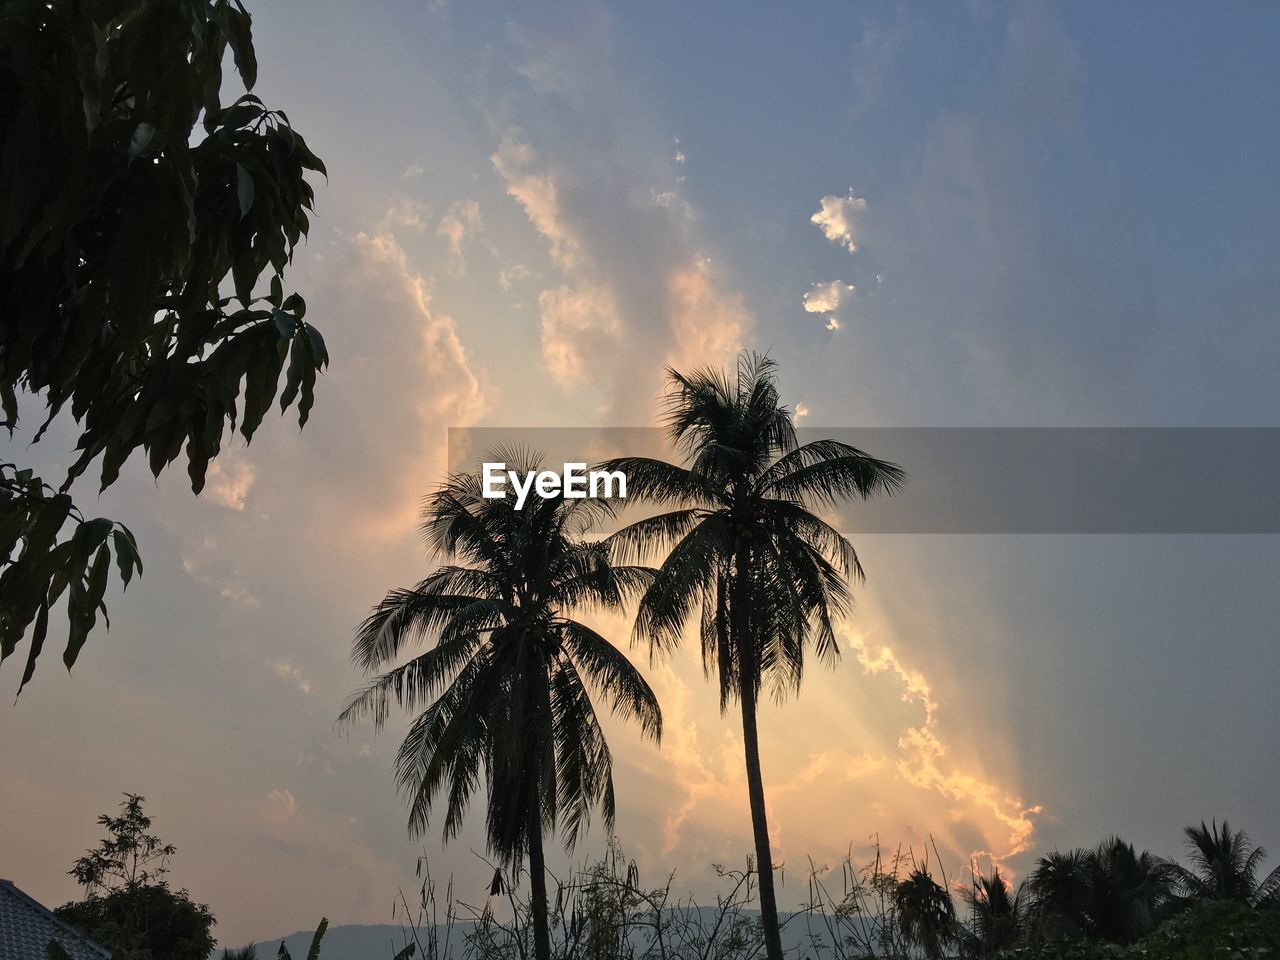 sky, tree, sunset, plant, cloud - sky, palm tree, beauty in nature, tropical climate, silhouette, scenics - nature, tranquility, tranquil scene, nature, growth, low angle view, orange color, no people, idyllic, coconut palm tree, outdoors, tropical tree, palm leaf